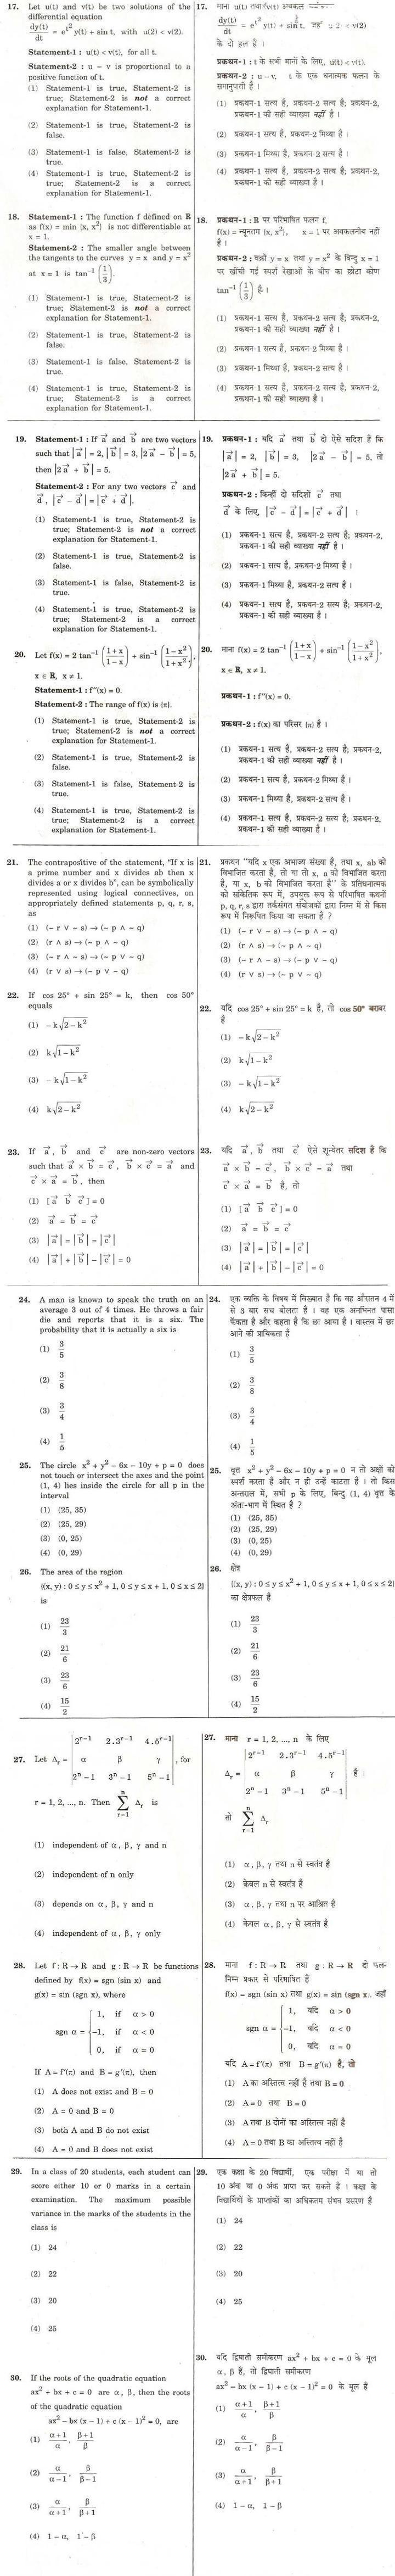 JEE Main 2010 Question Paper with Answers for B.Tech & B.Arch   jee main  Image